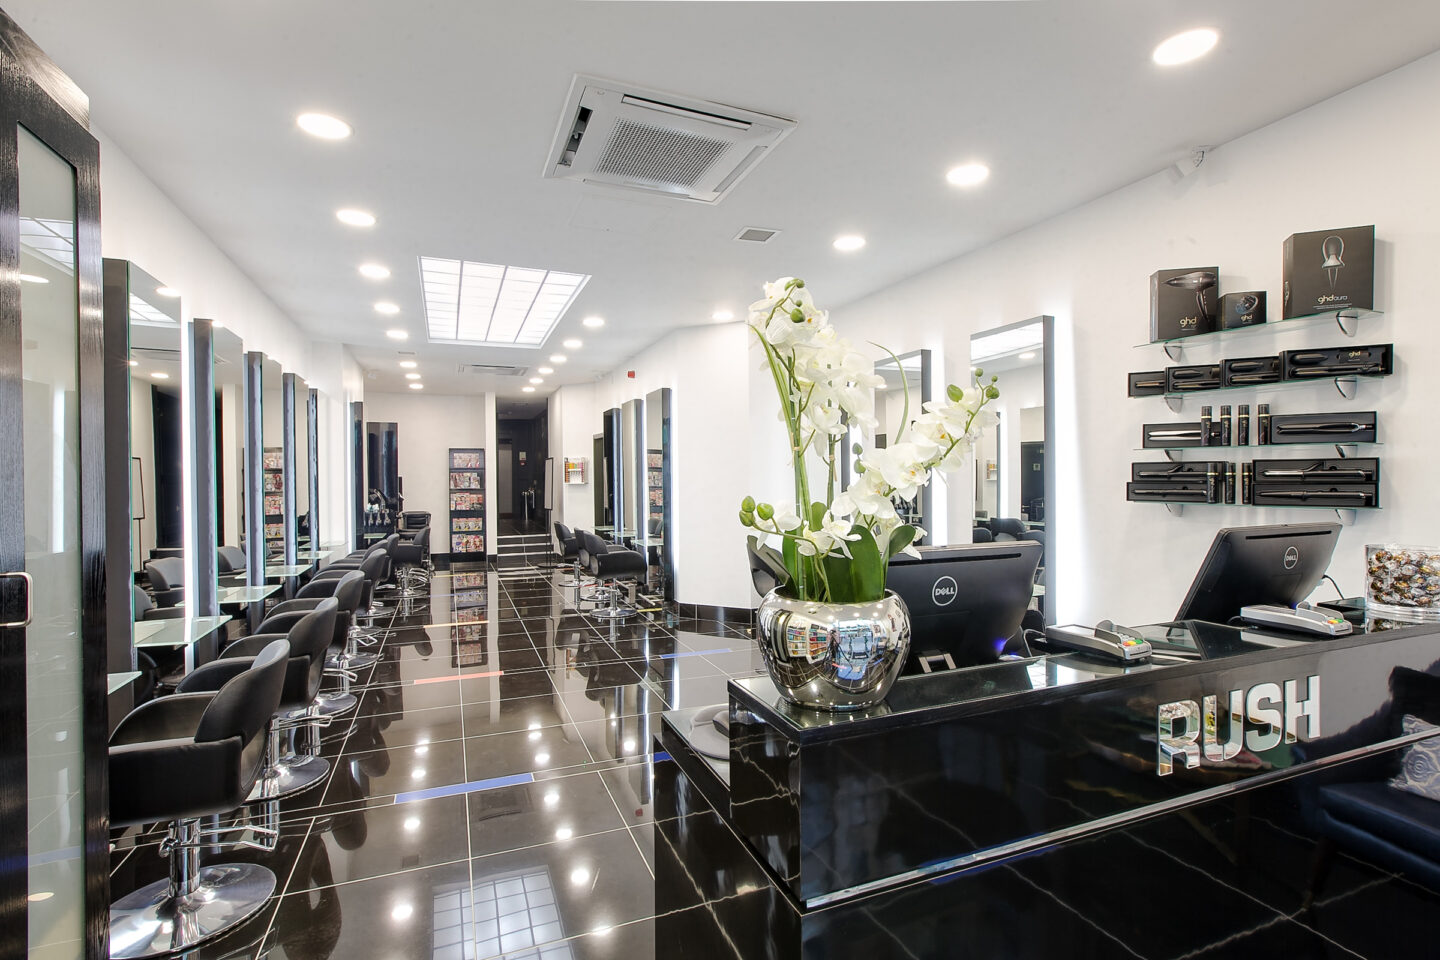 Rush Hair opens Northern Flagship Salon on Deansgate Manchester